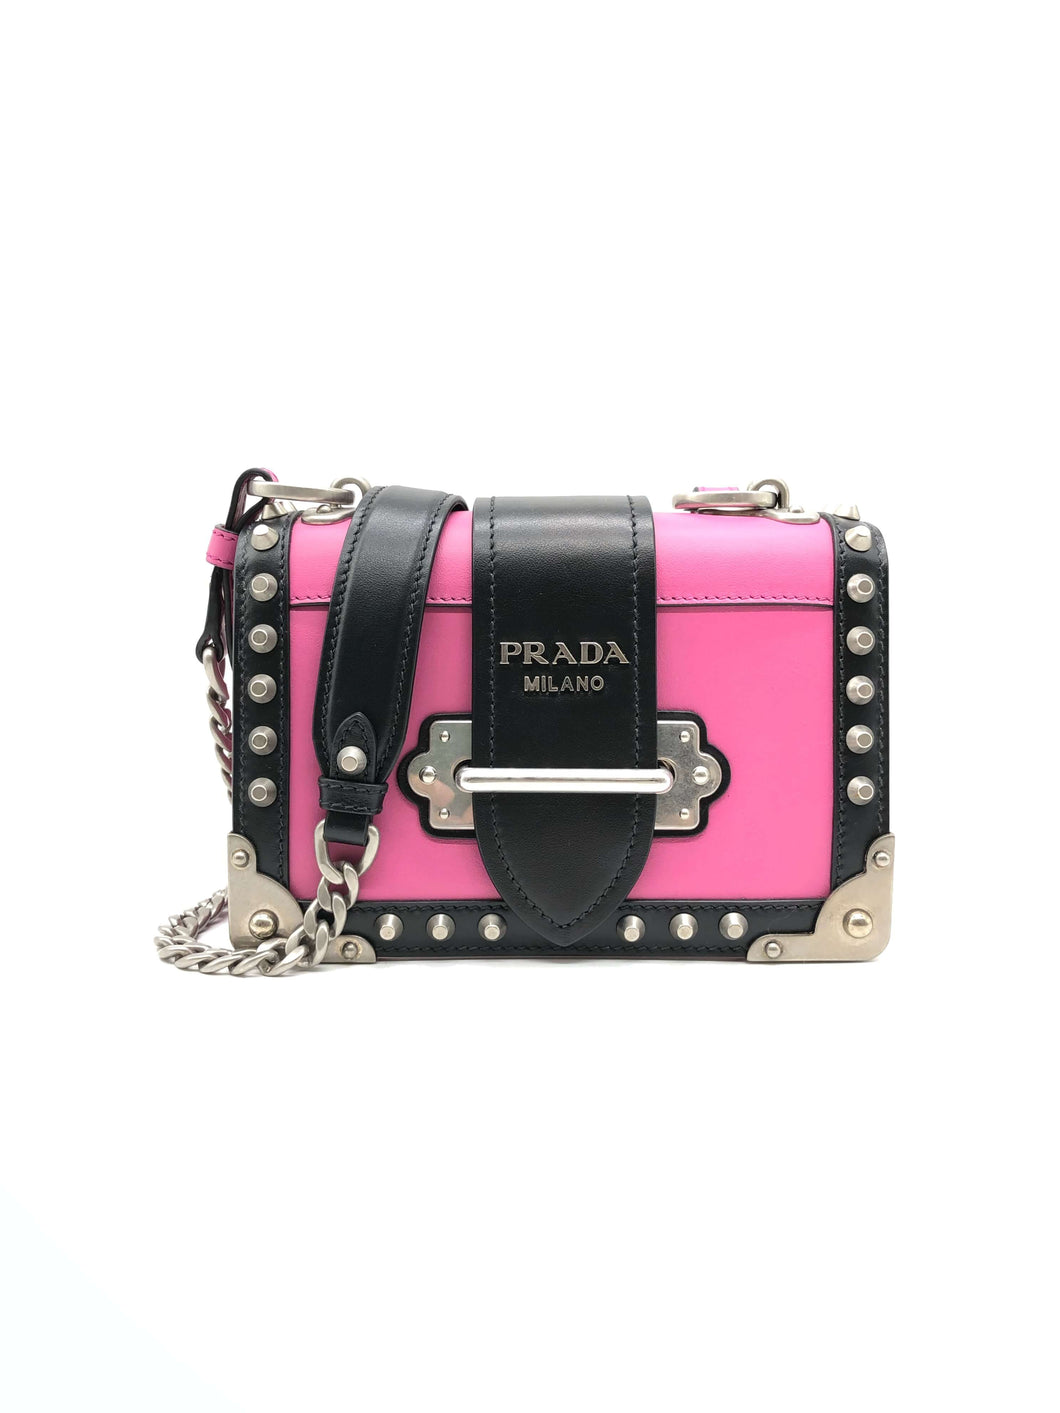 Prada Leather Cahier Crossbody Bag